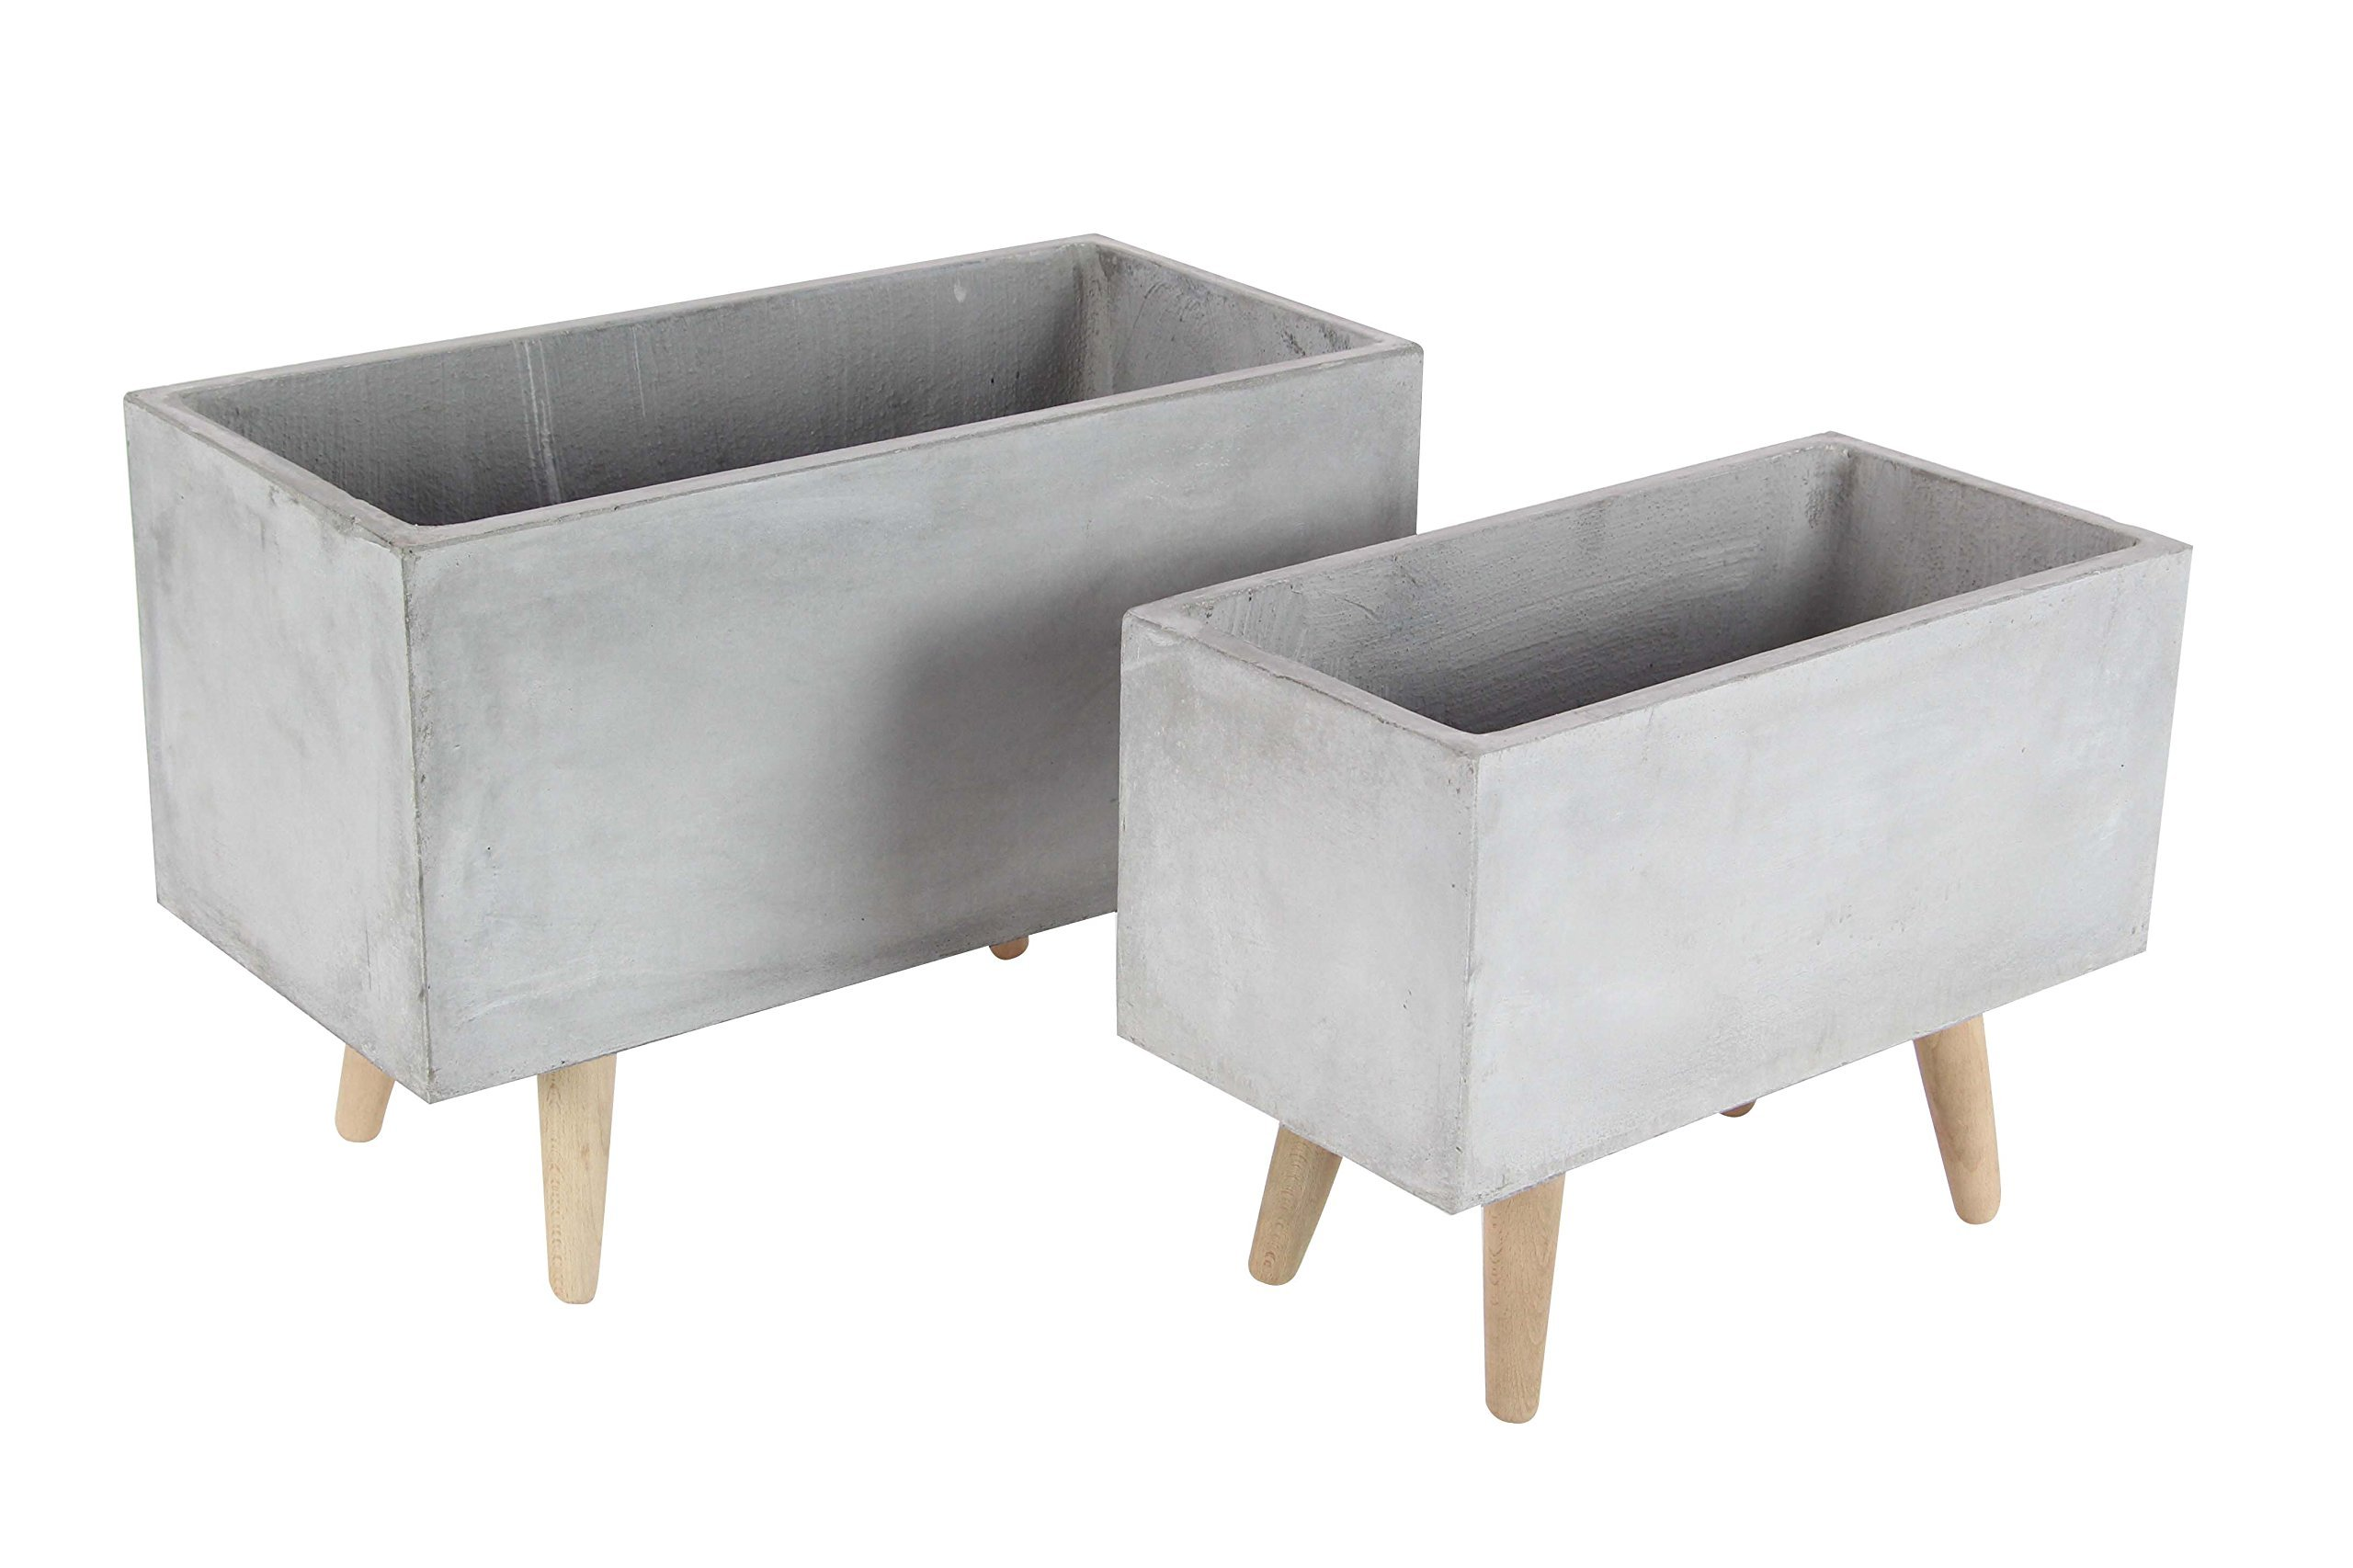 Deco 79 46466 Gray Fiber Clay and Wood Planters (Set of 2), 17'' x 21'', Gray/Brown